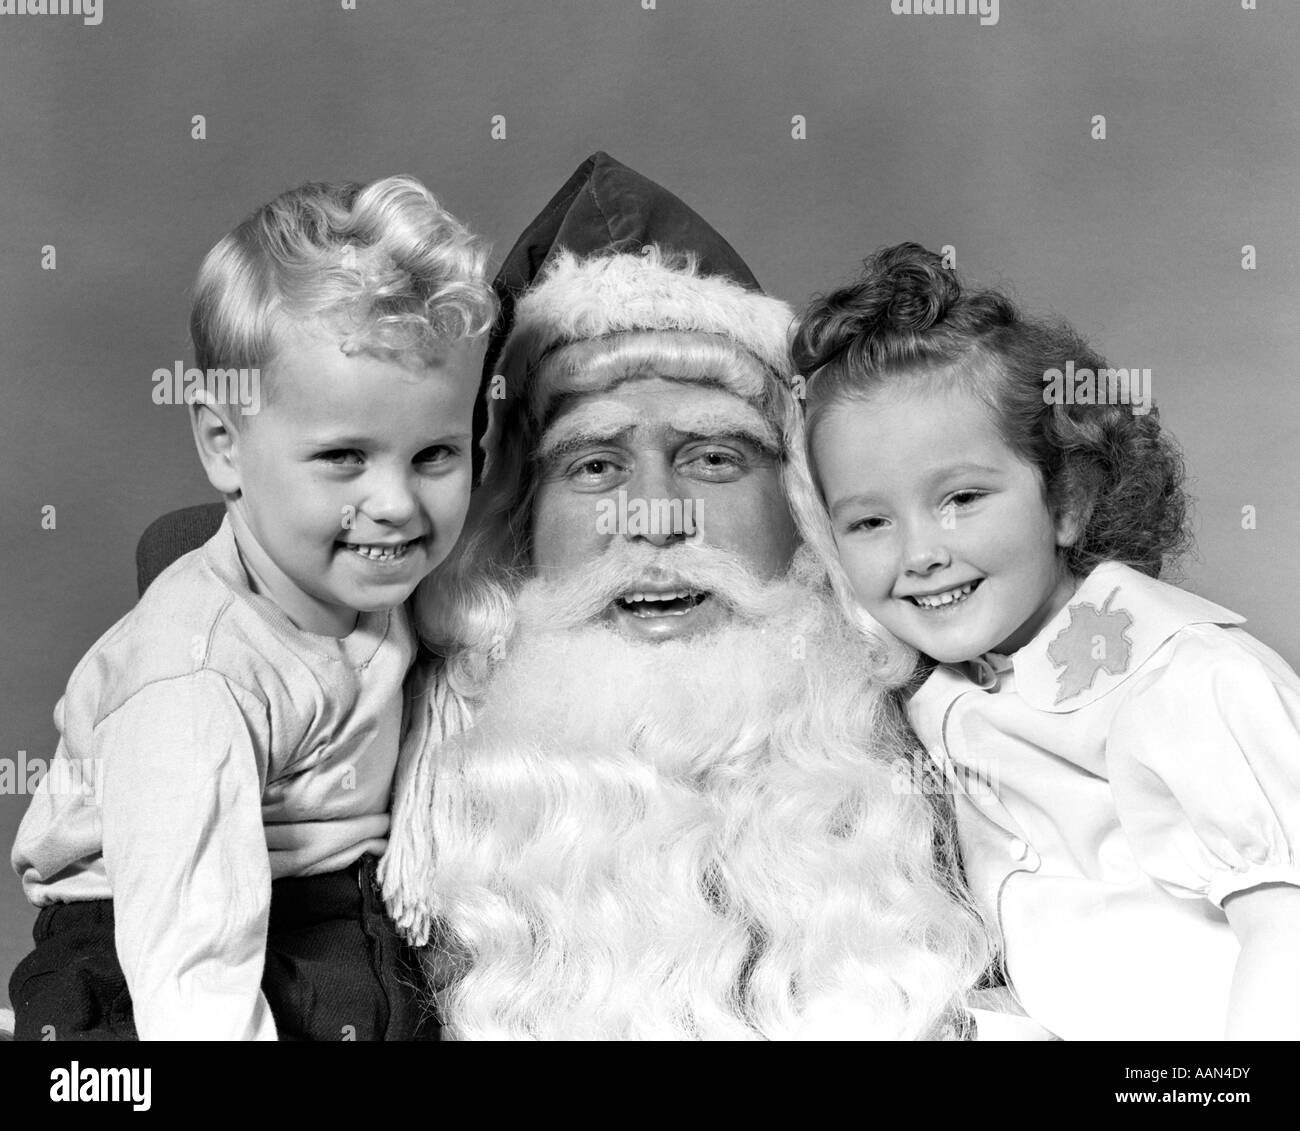 1940s MAN SANTA CLAUS POSING WITH YOUNG BOY AND GIRL IN LAP SMILING ALL LOOKING AT CAMERA - Stock Image